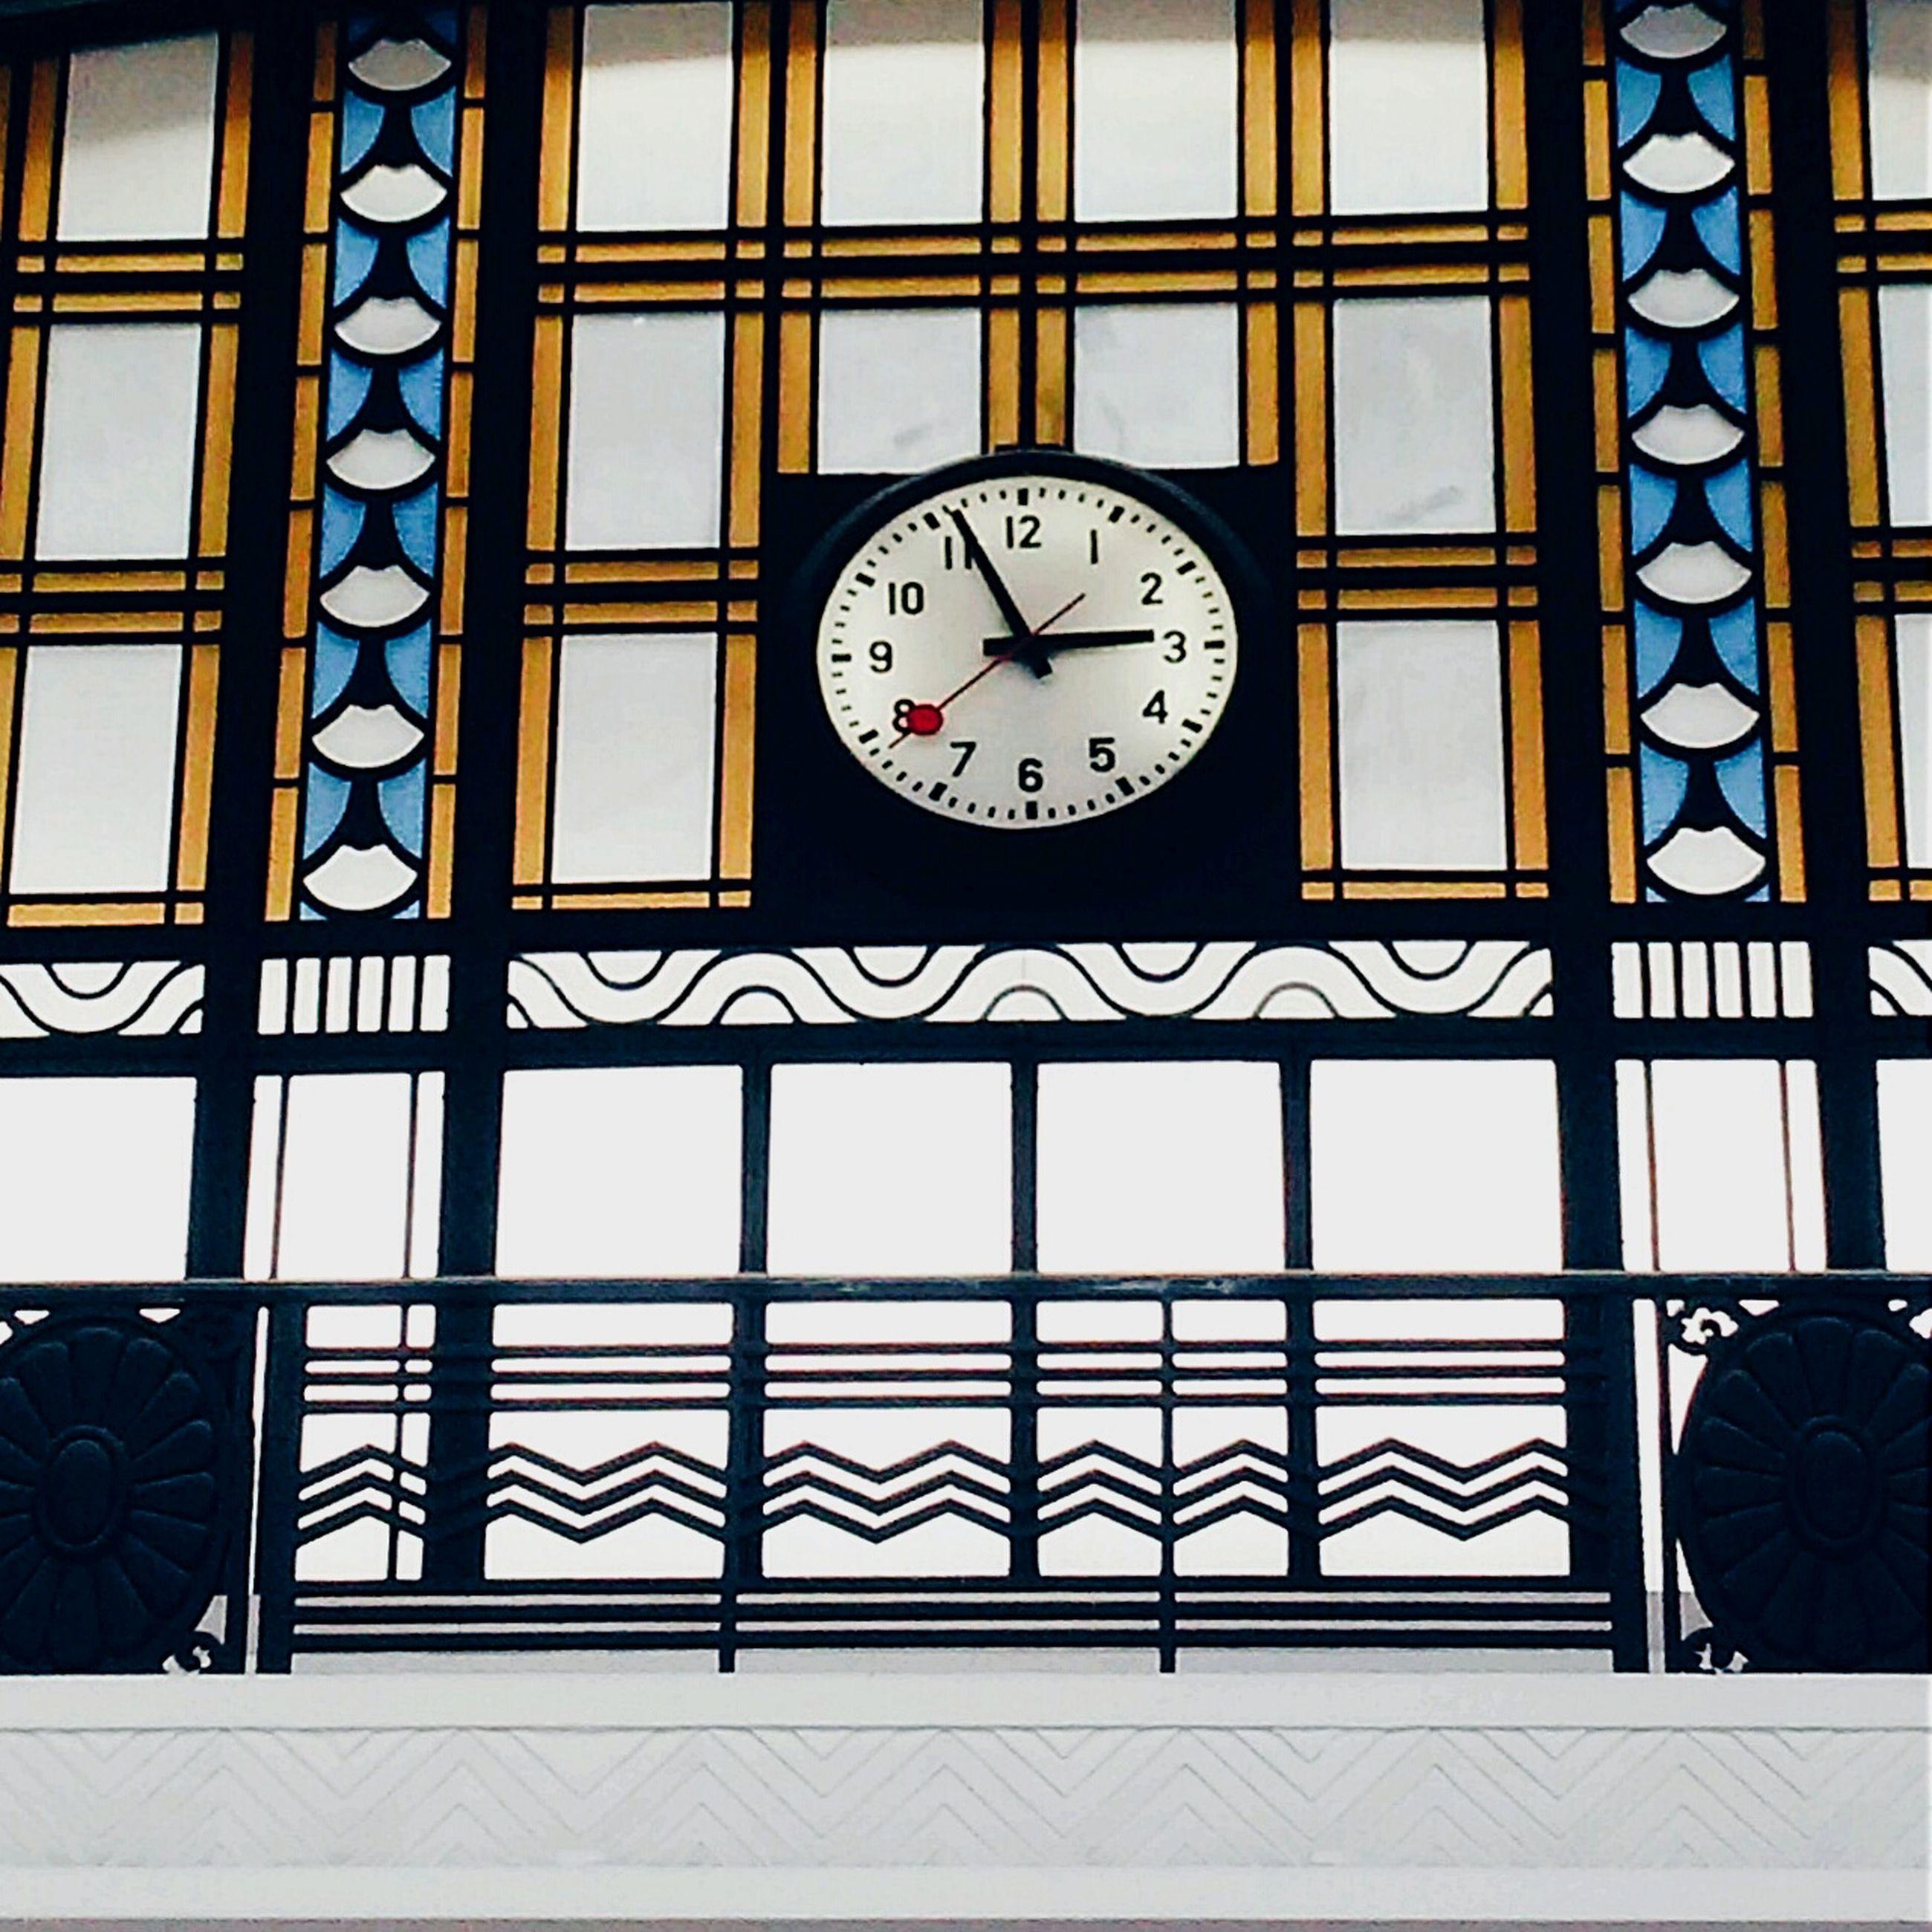 clock, time, indoors, architecture, built structure, circle, text, window, number, communication, glass - material, geometric shape, wall - building feature, roman numeral, clock face, day, old-fashioned, western script